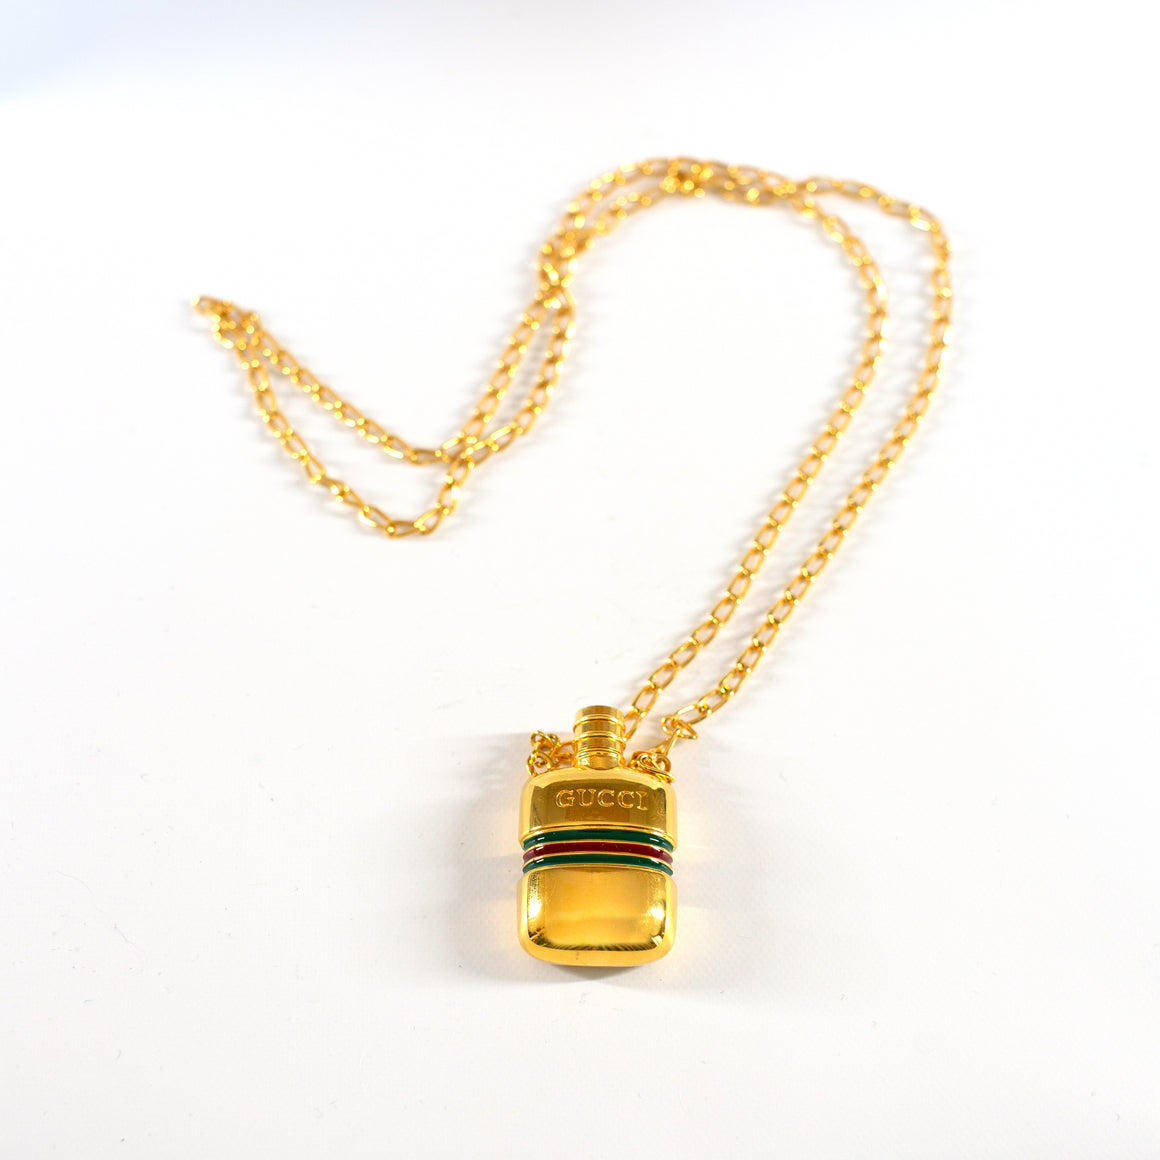 VINTAGE JEWELRY | GUCCI PERFUME VIAL NECKLACE